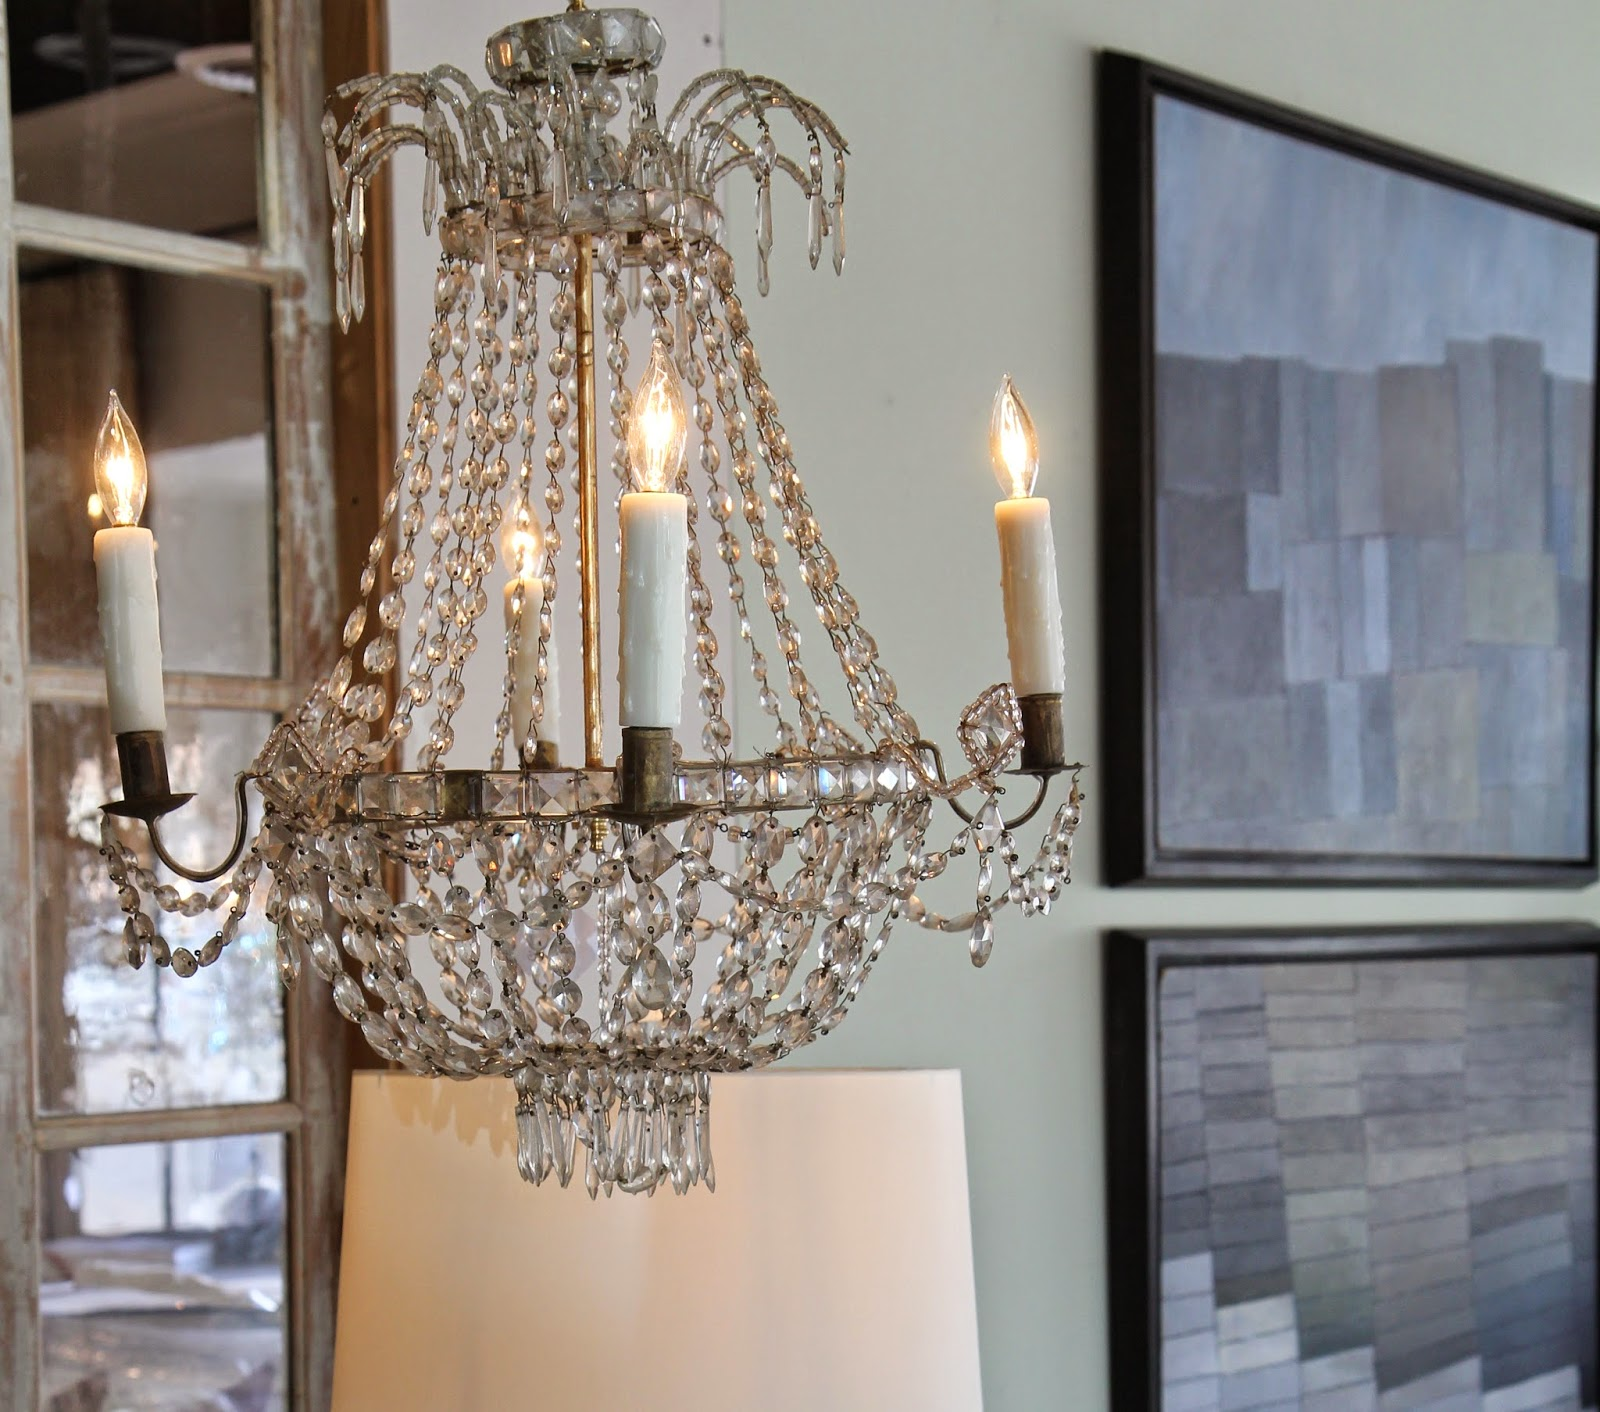 Inspirational Chandeliers and Sconces; Nora's Nest